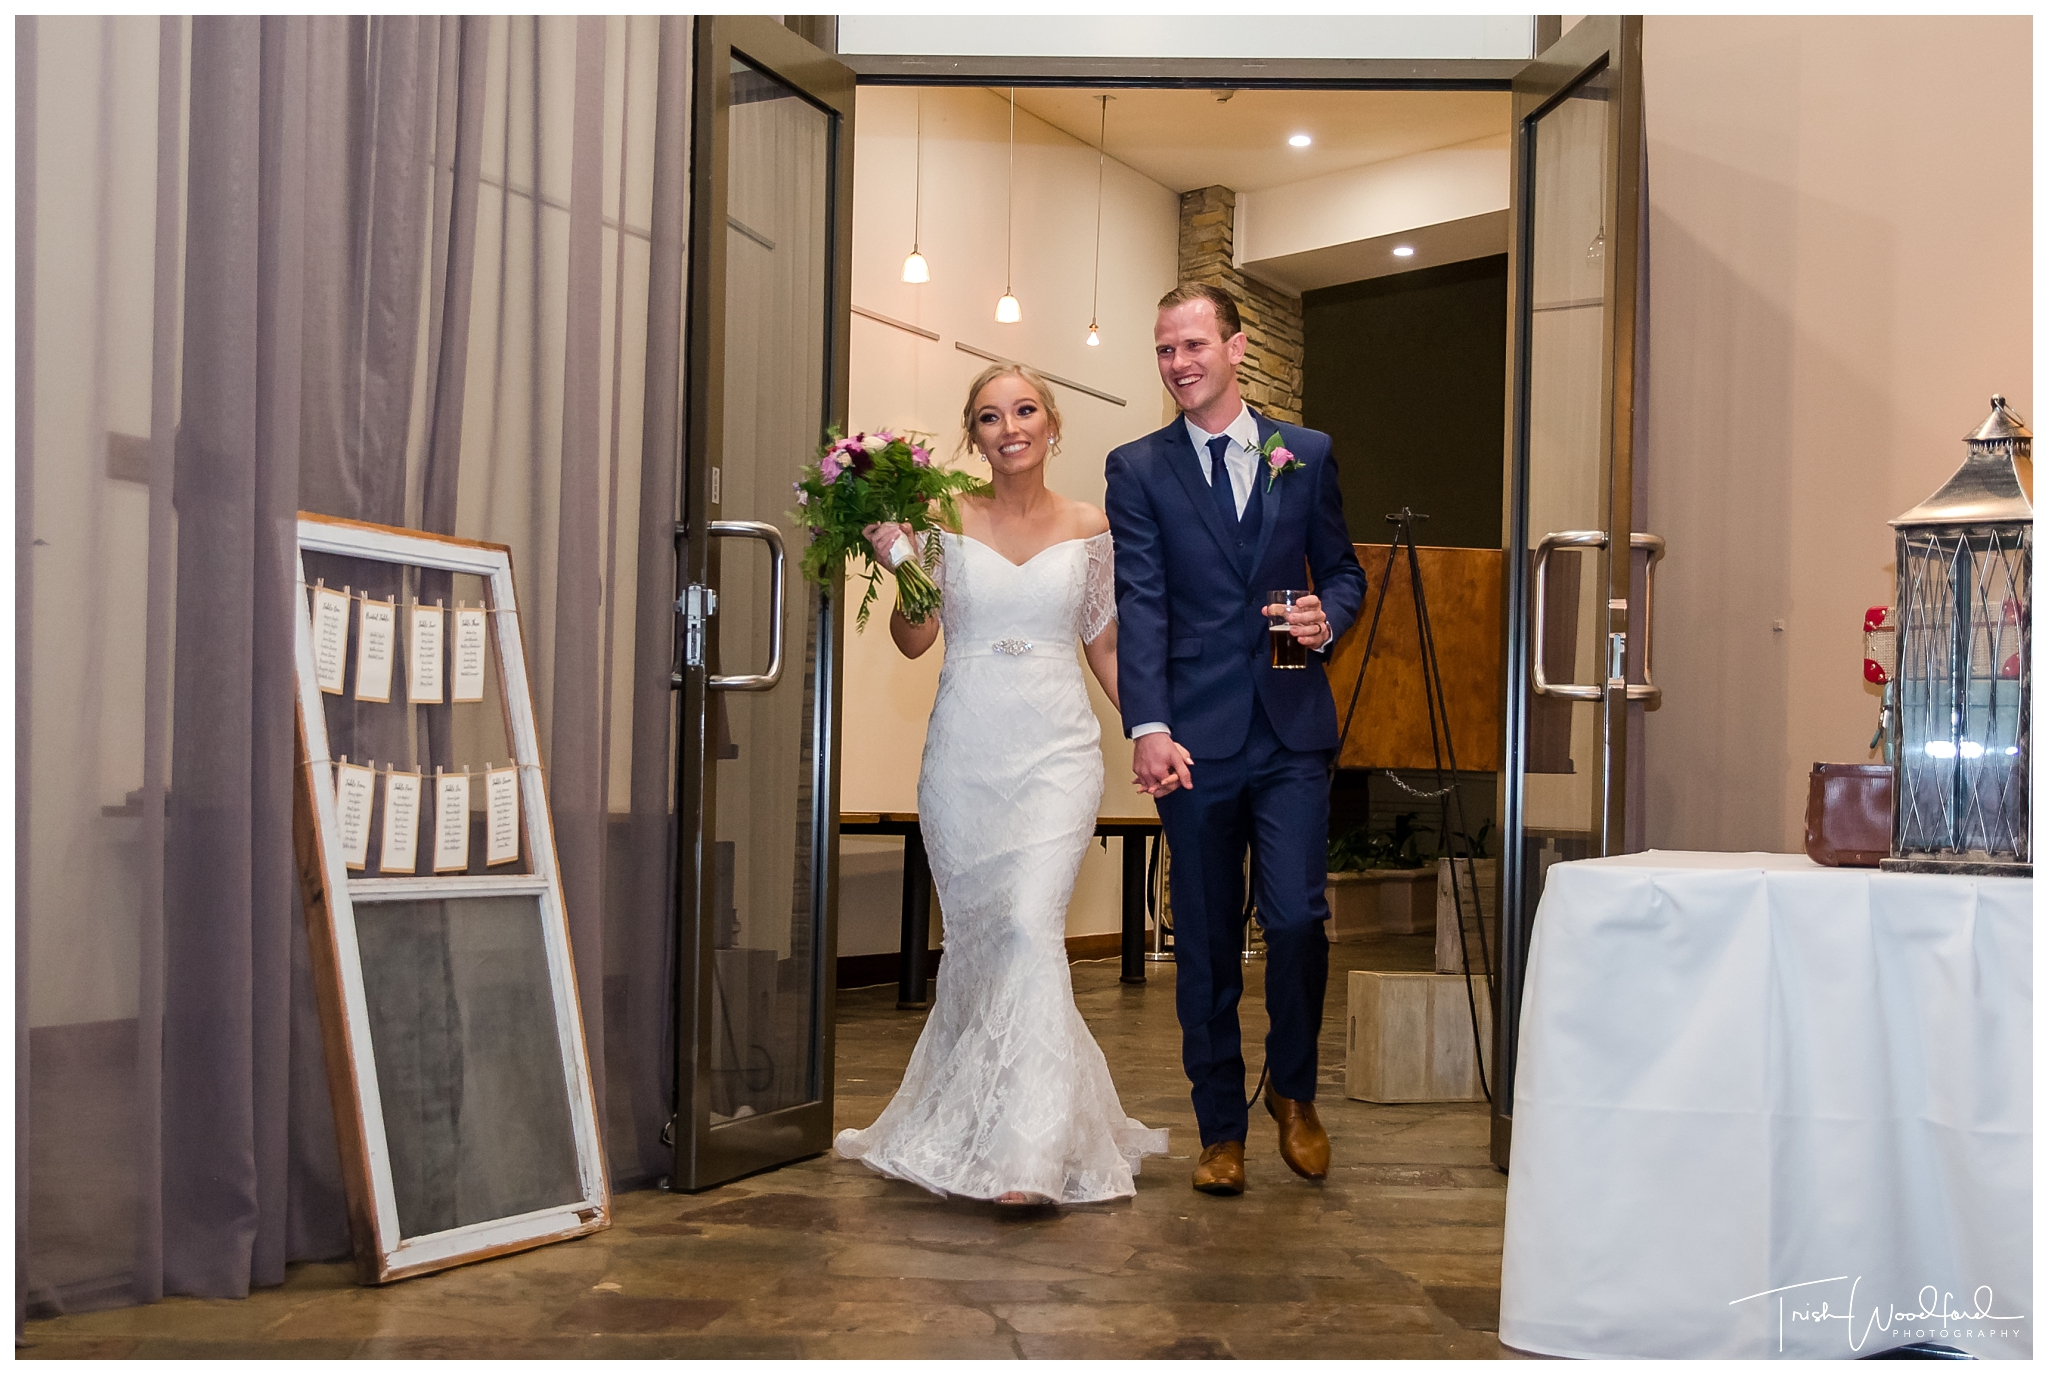 Araluen Golf Resort Wedding Reception